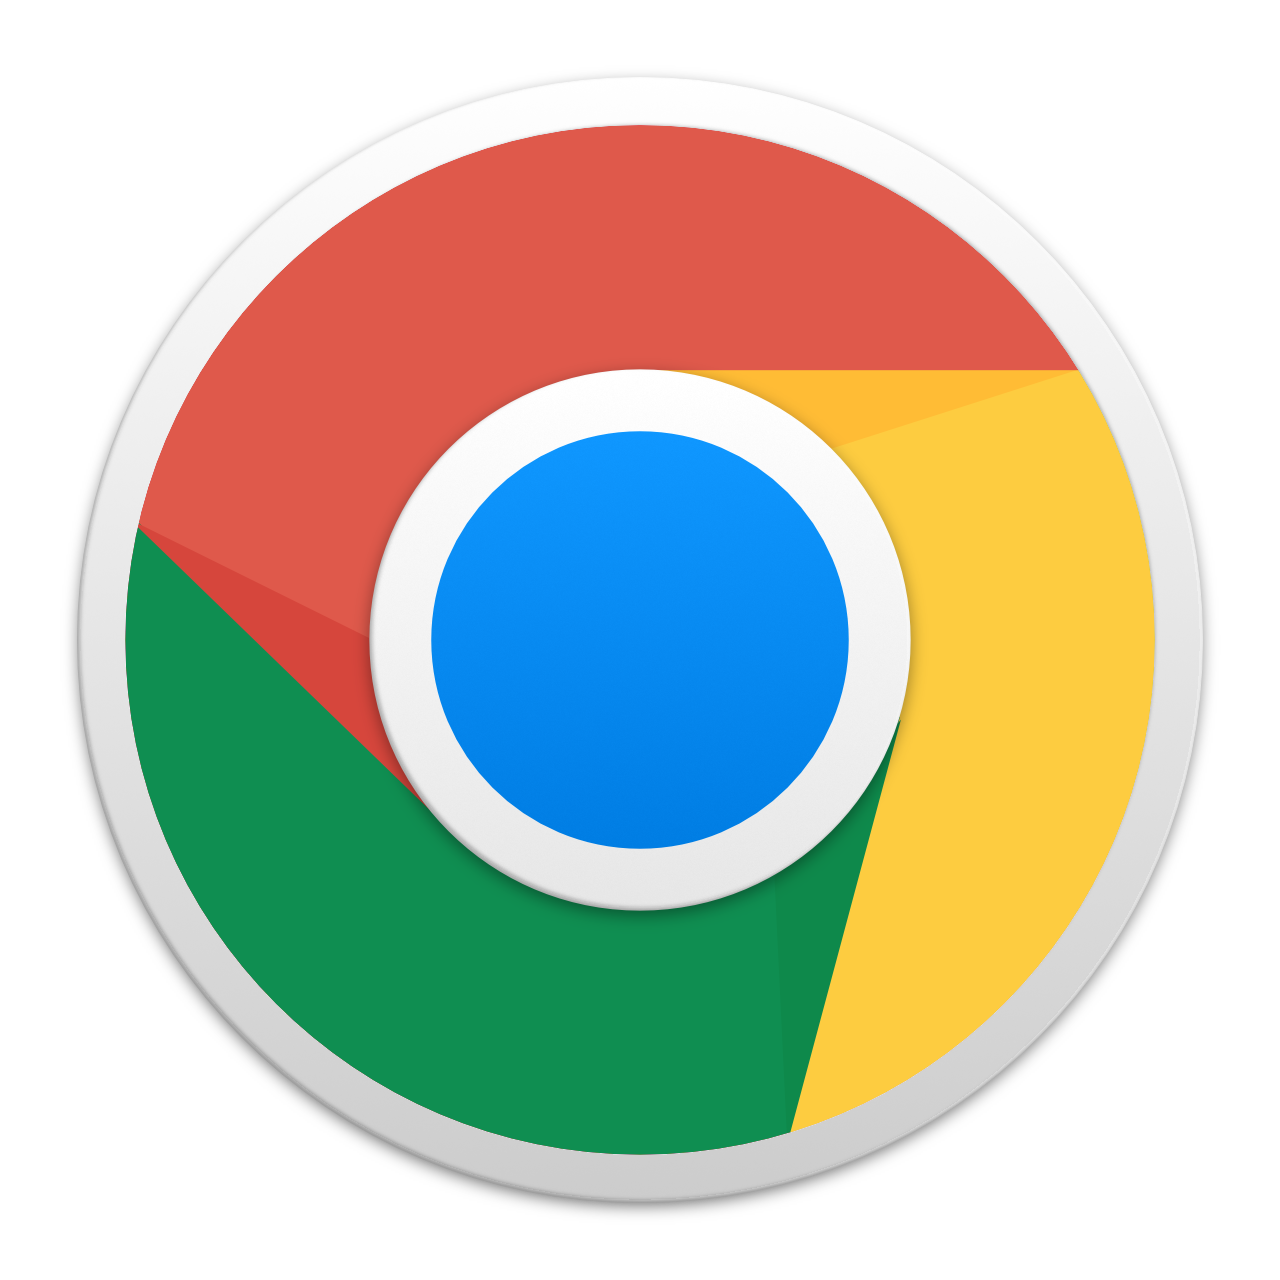 Free download of Chrome PNG Image